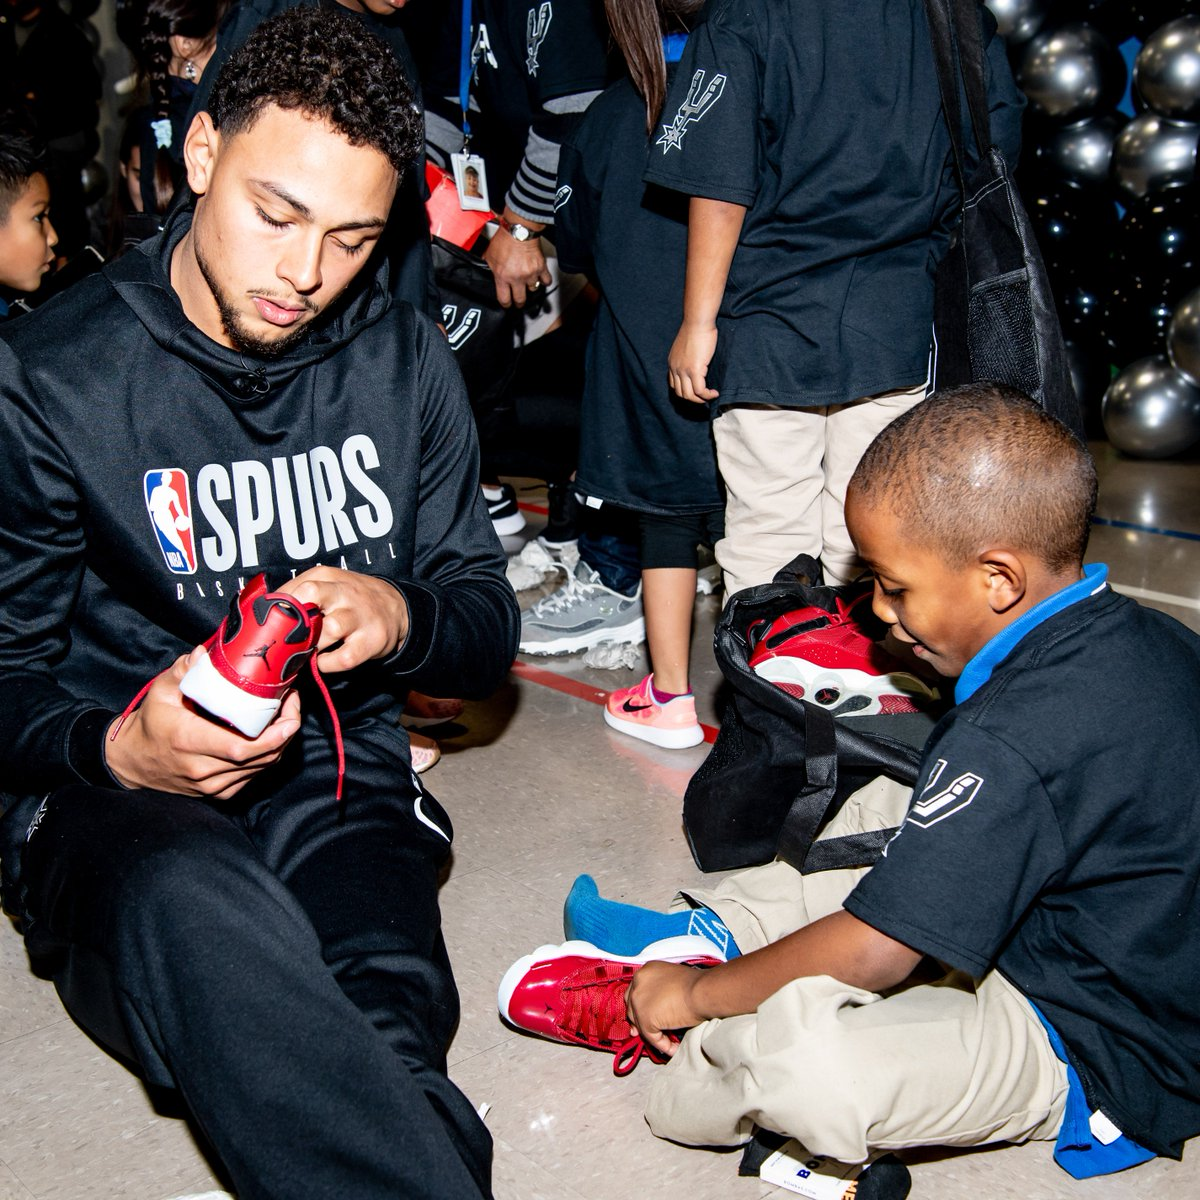 Earlier this month, Bryn and Coach Pop teamed up with @ShoesThatFit to deliver new kicks to over 450 students and teachers at Washington Elementary!  #SeasonOfGiving | #SpursFamily